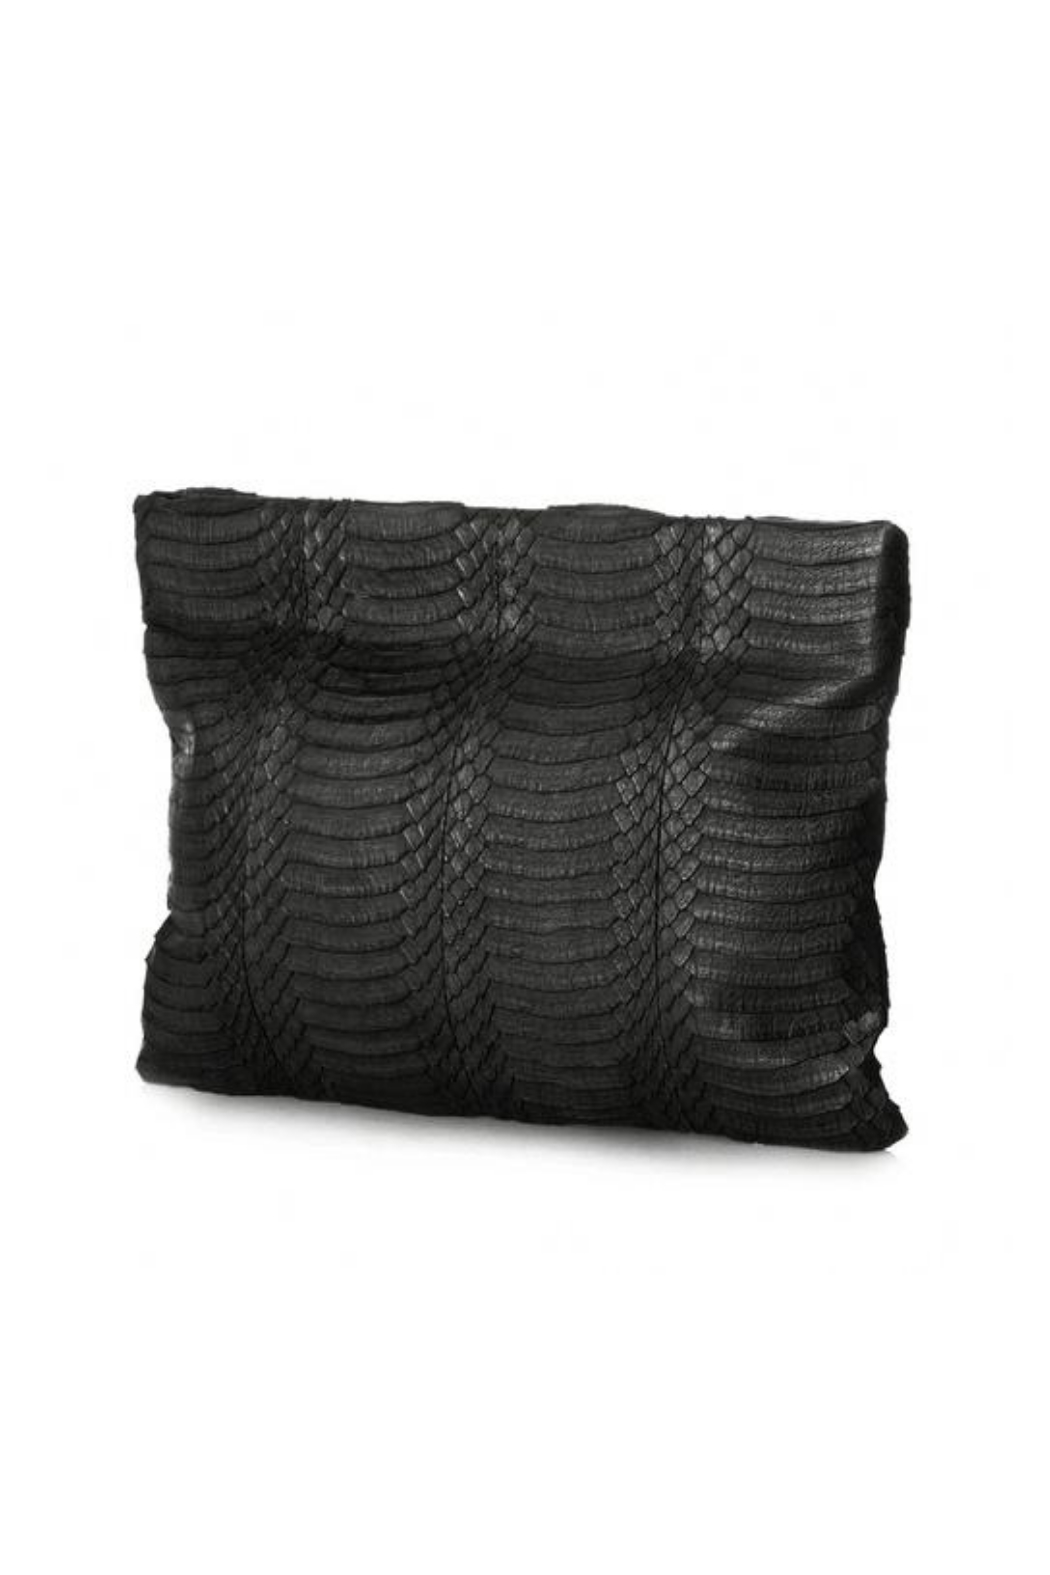 Deux Cuirs (C&C Creative) Snakeskin Springframe Clutch - Front Full Image